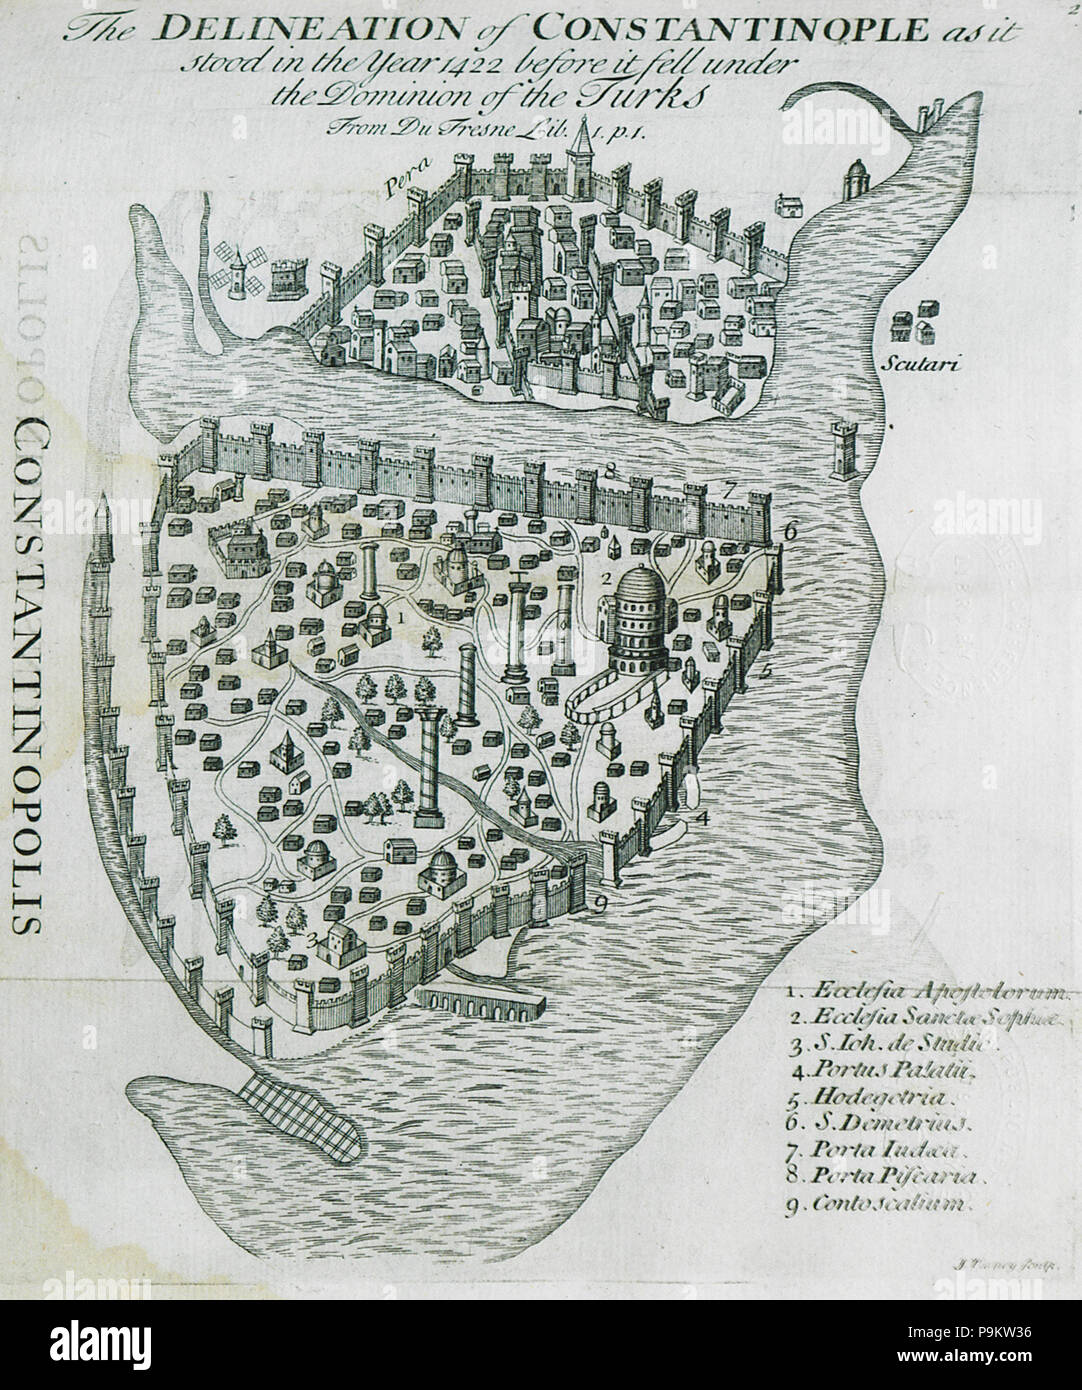 310 The delineation of Constantinople, as it stood in the year 1422 before it fell under the dominion of the Turks From du F - Gilles Pierre - 1729 - Stock Image